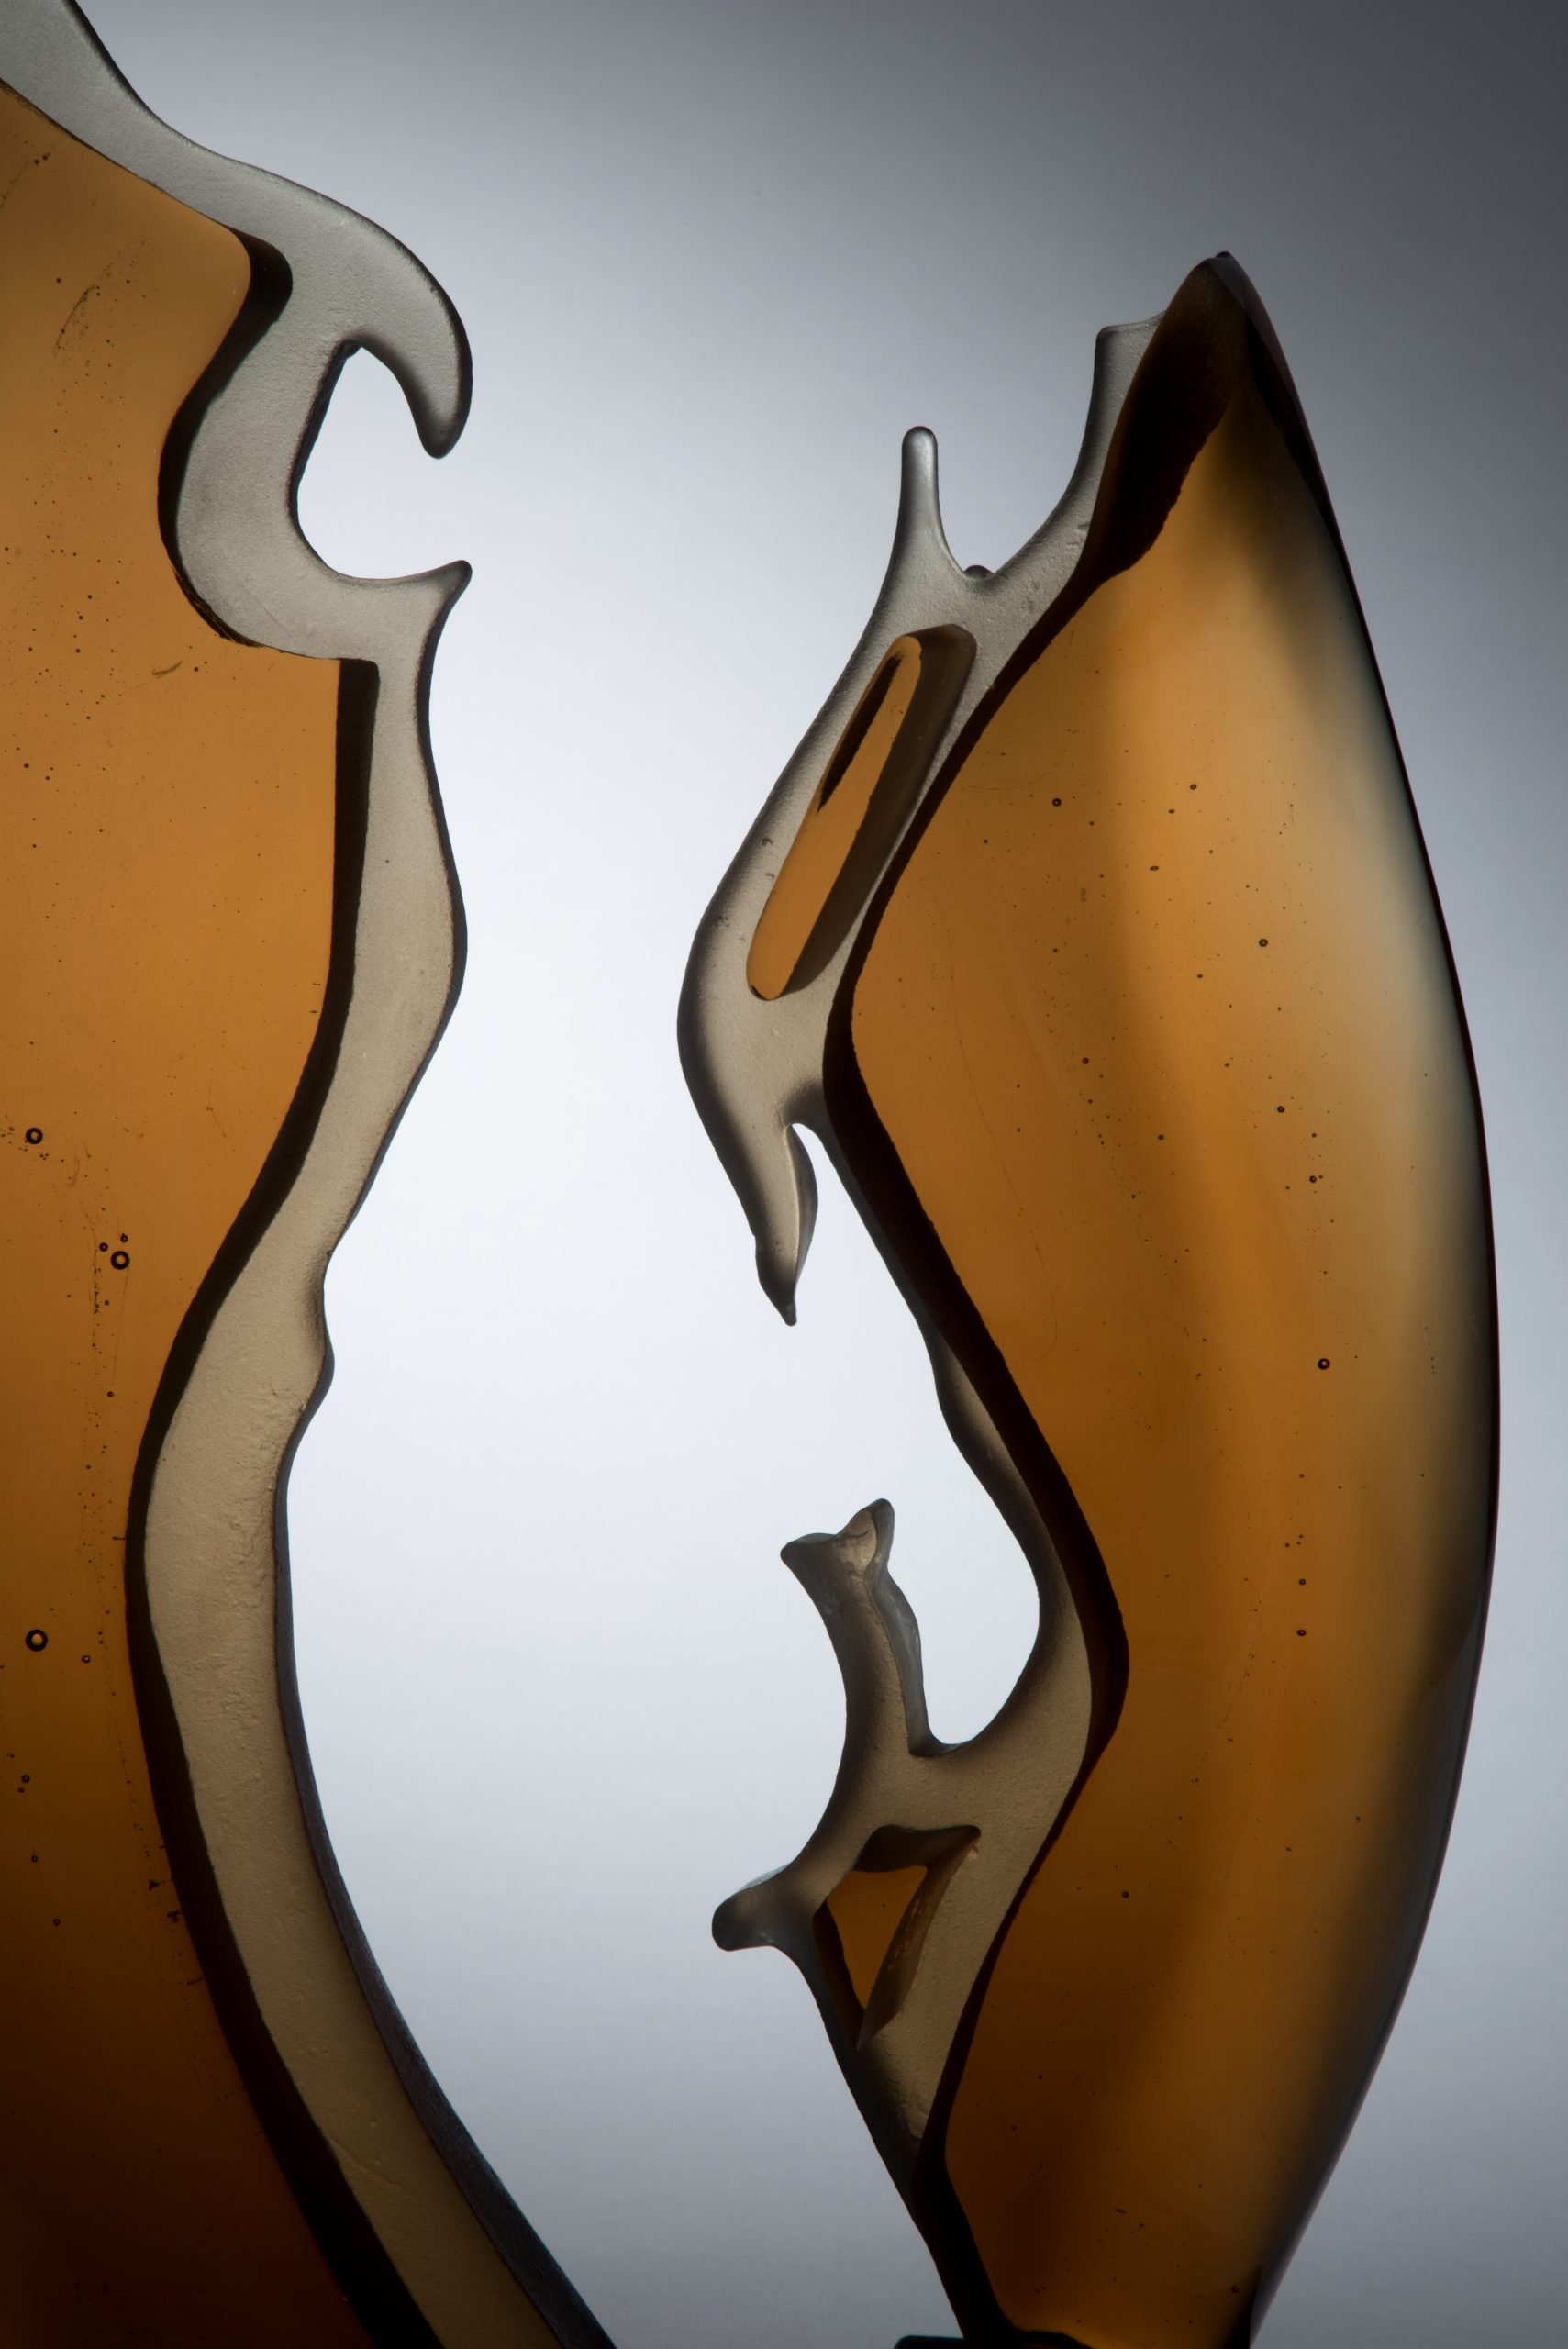 She Danced by Ruth McCallum Howell. Cast and hand polished glass. Detail